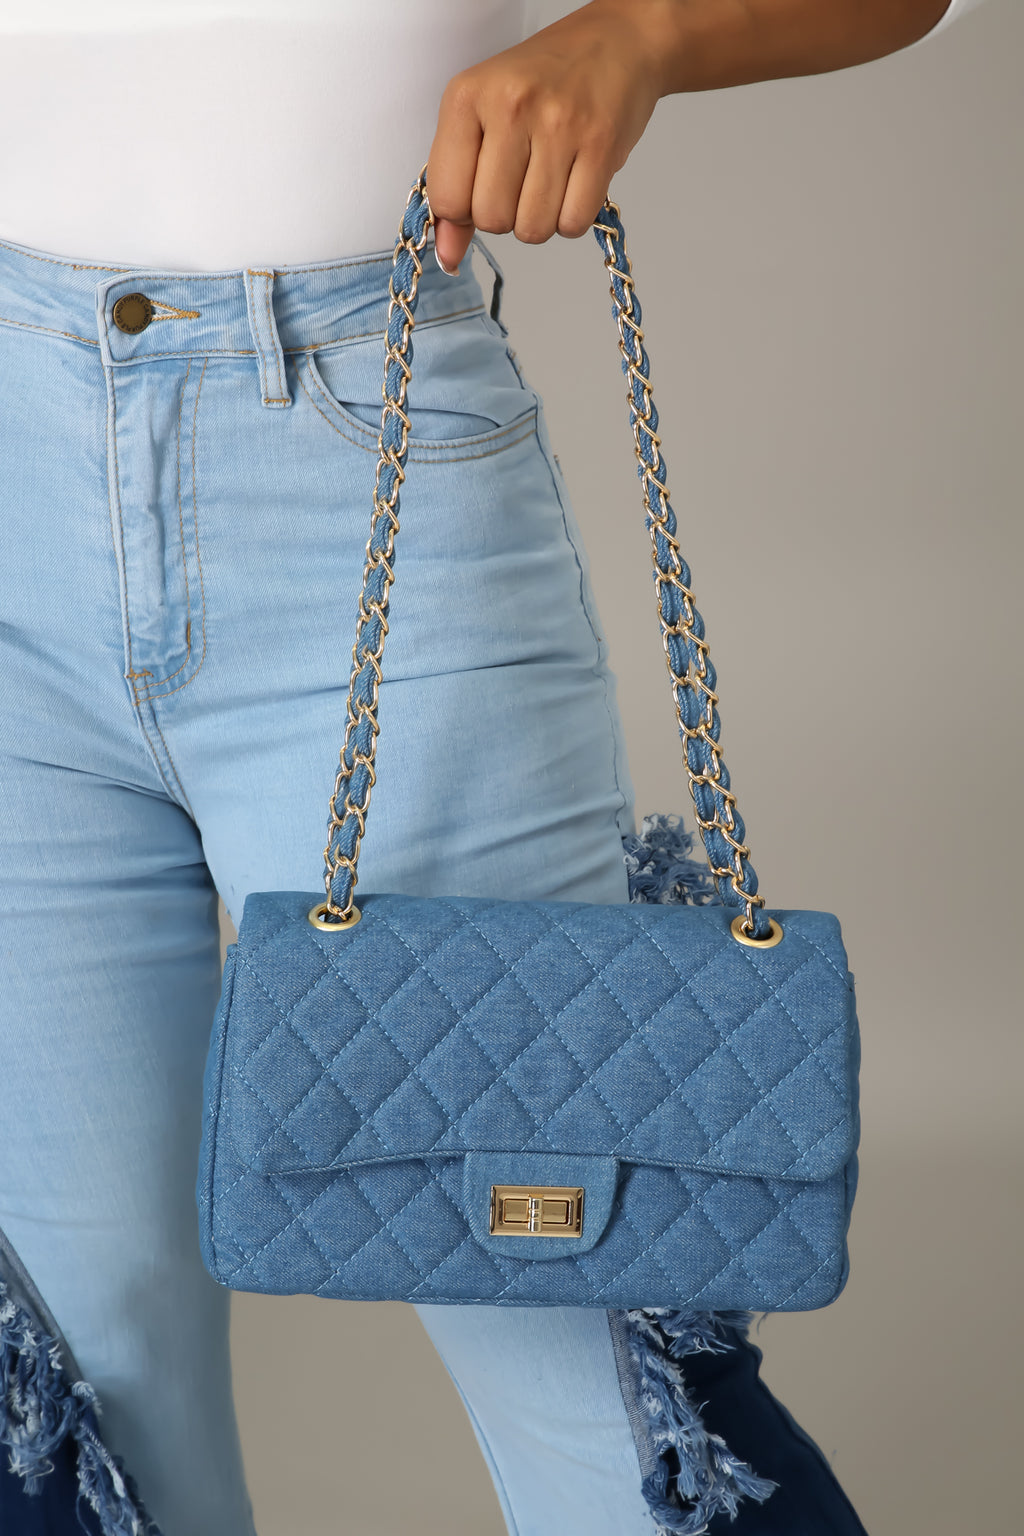 Chic Moment Handbag